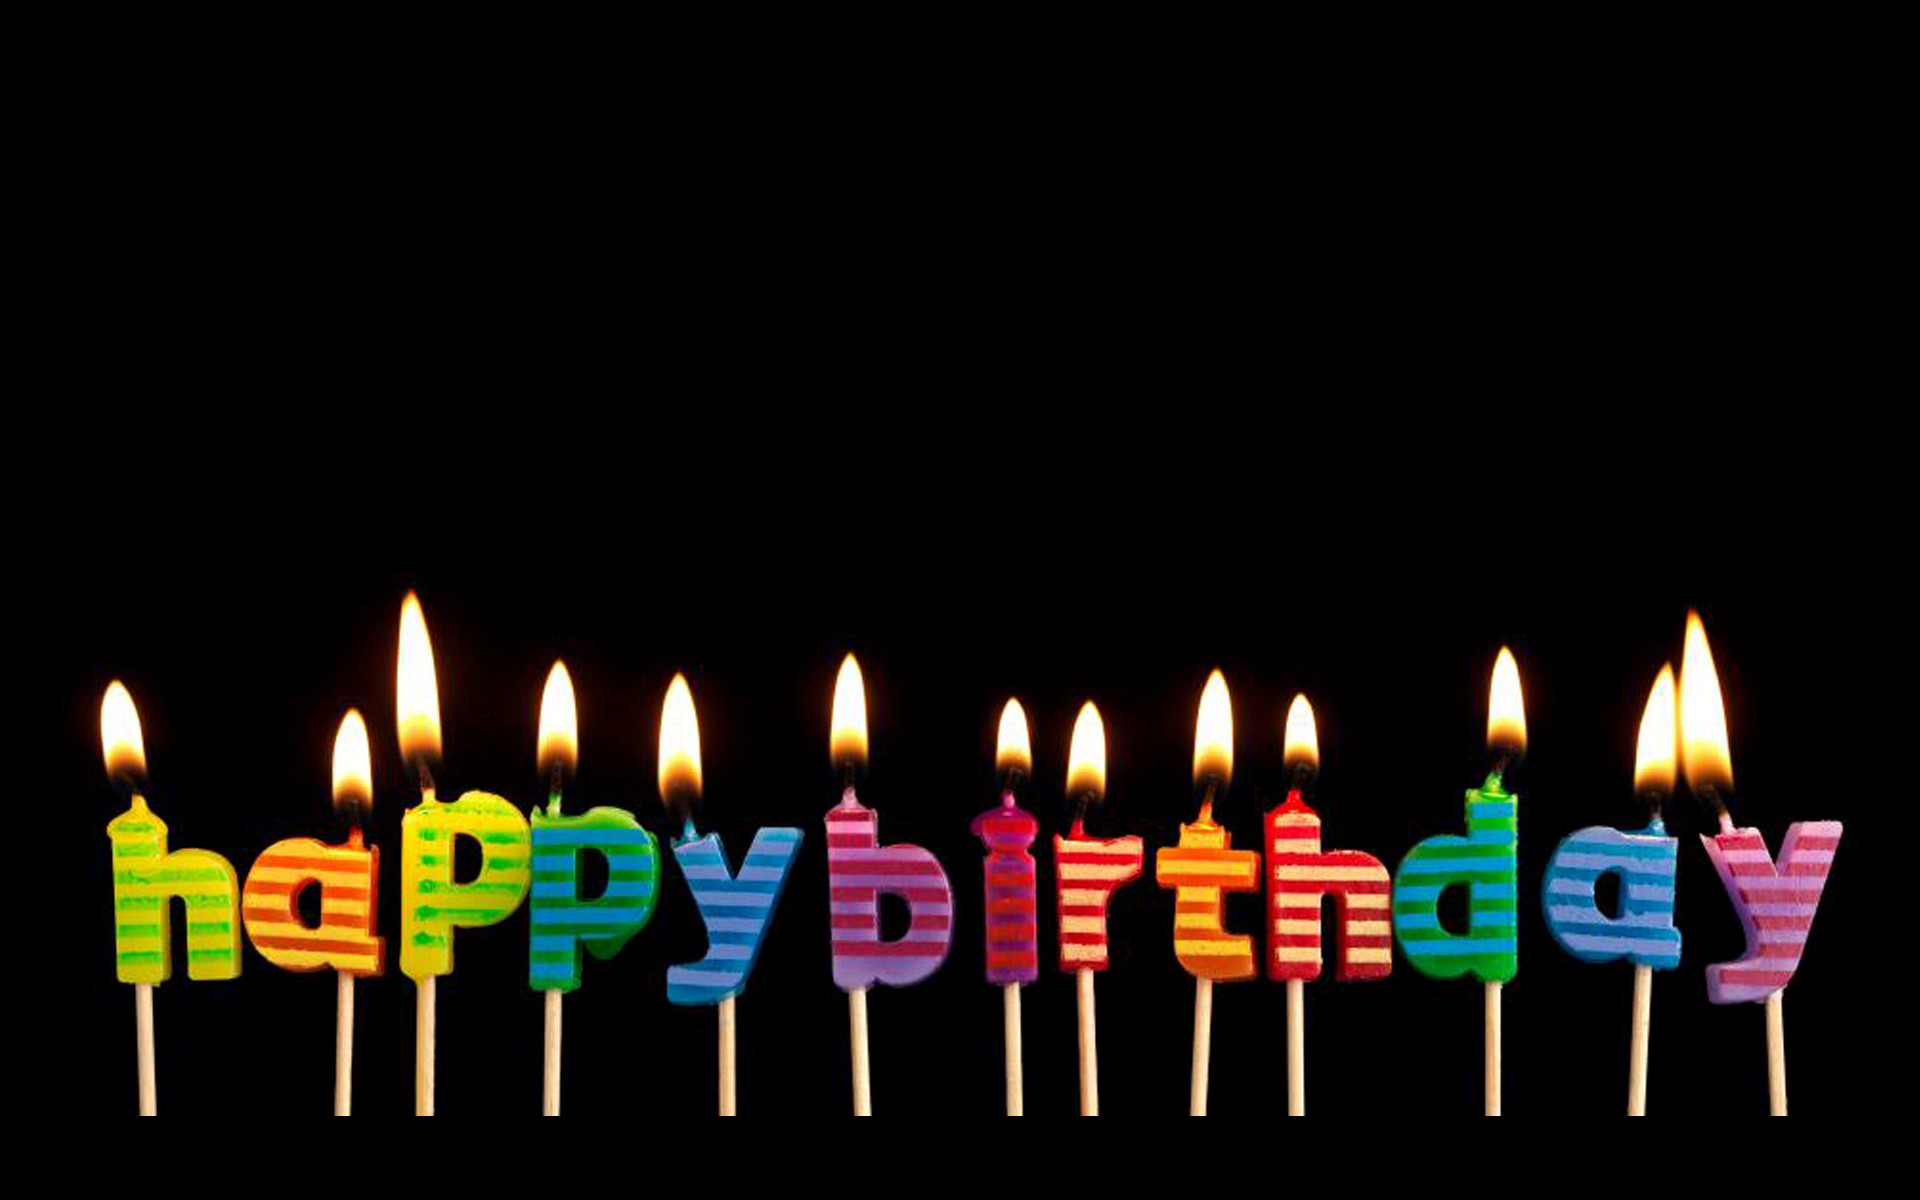 wallpaper birthday images ; Happy_Birthday_Lamp_on_Latters_Images